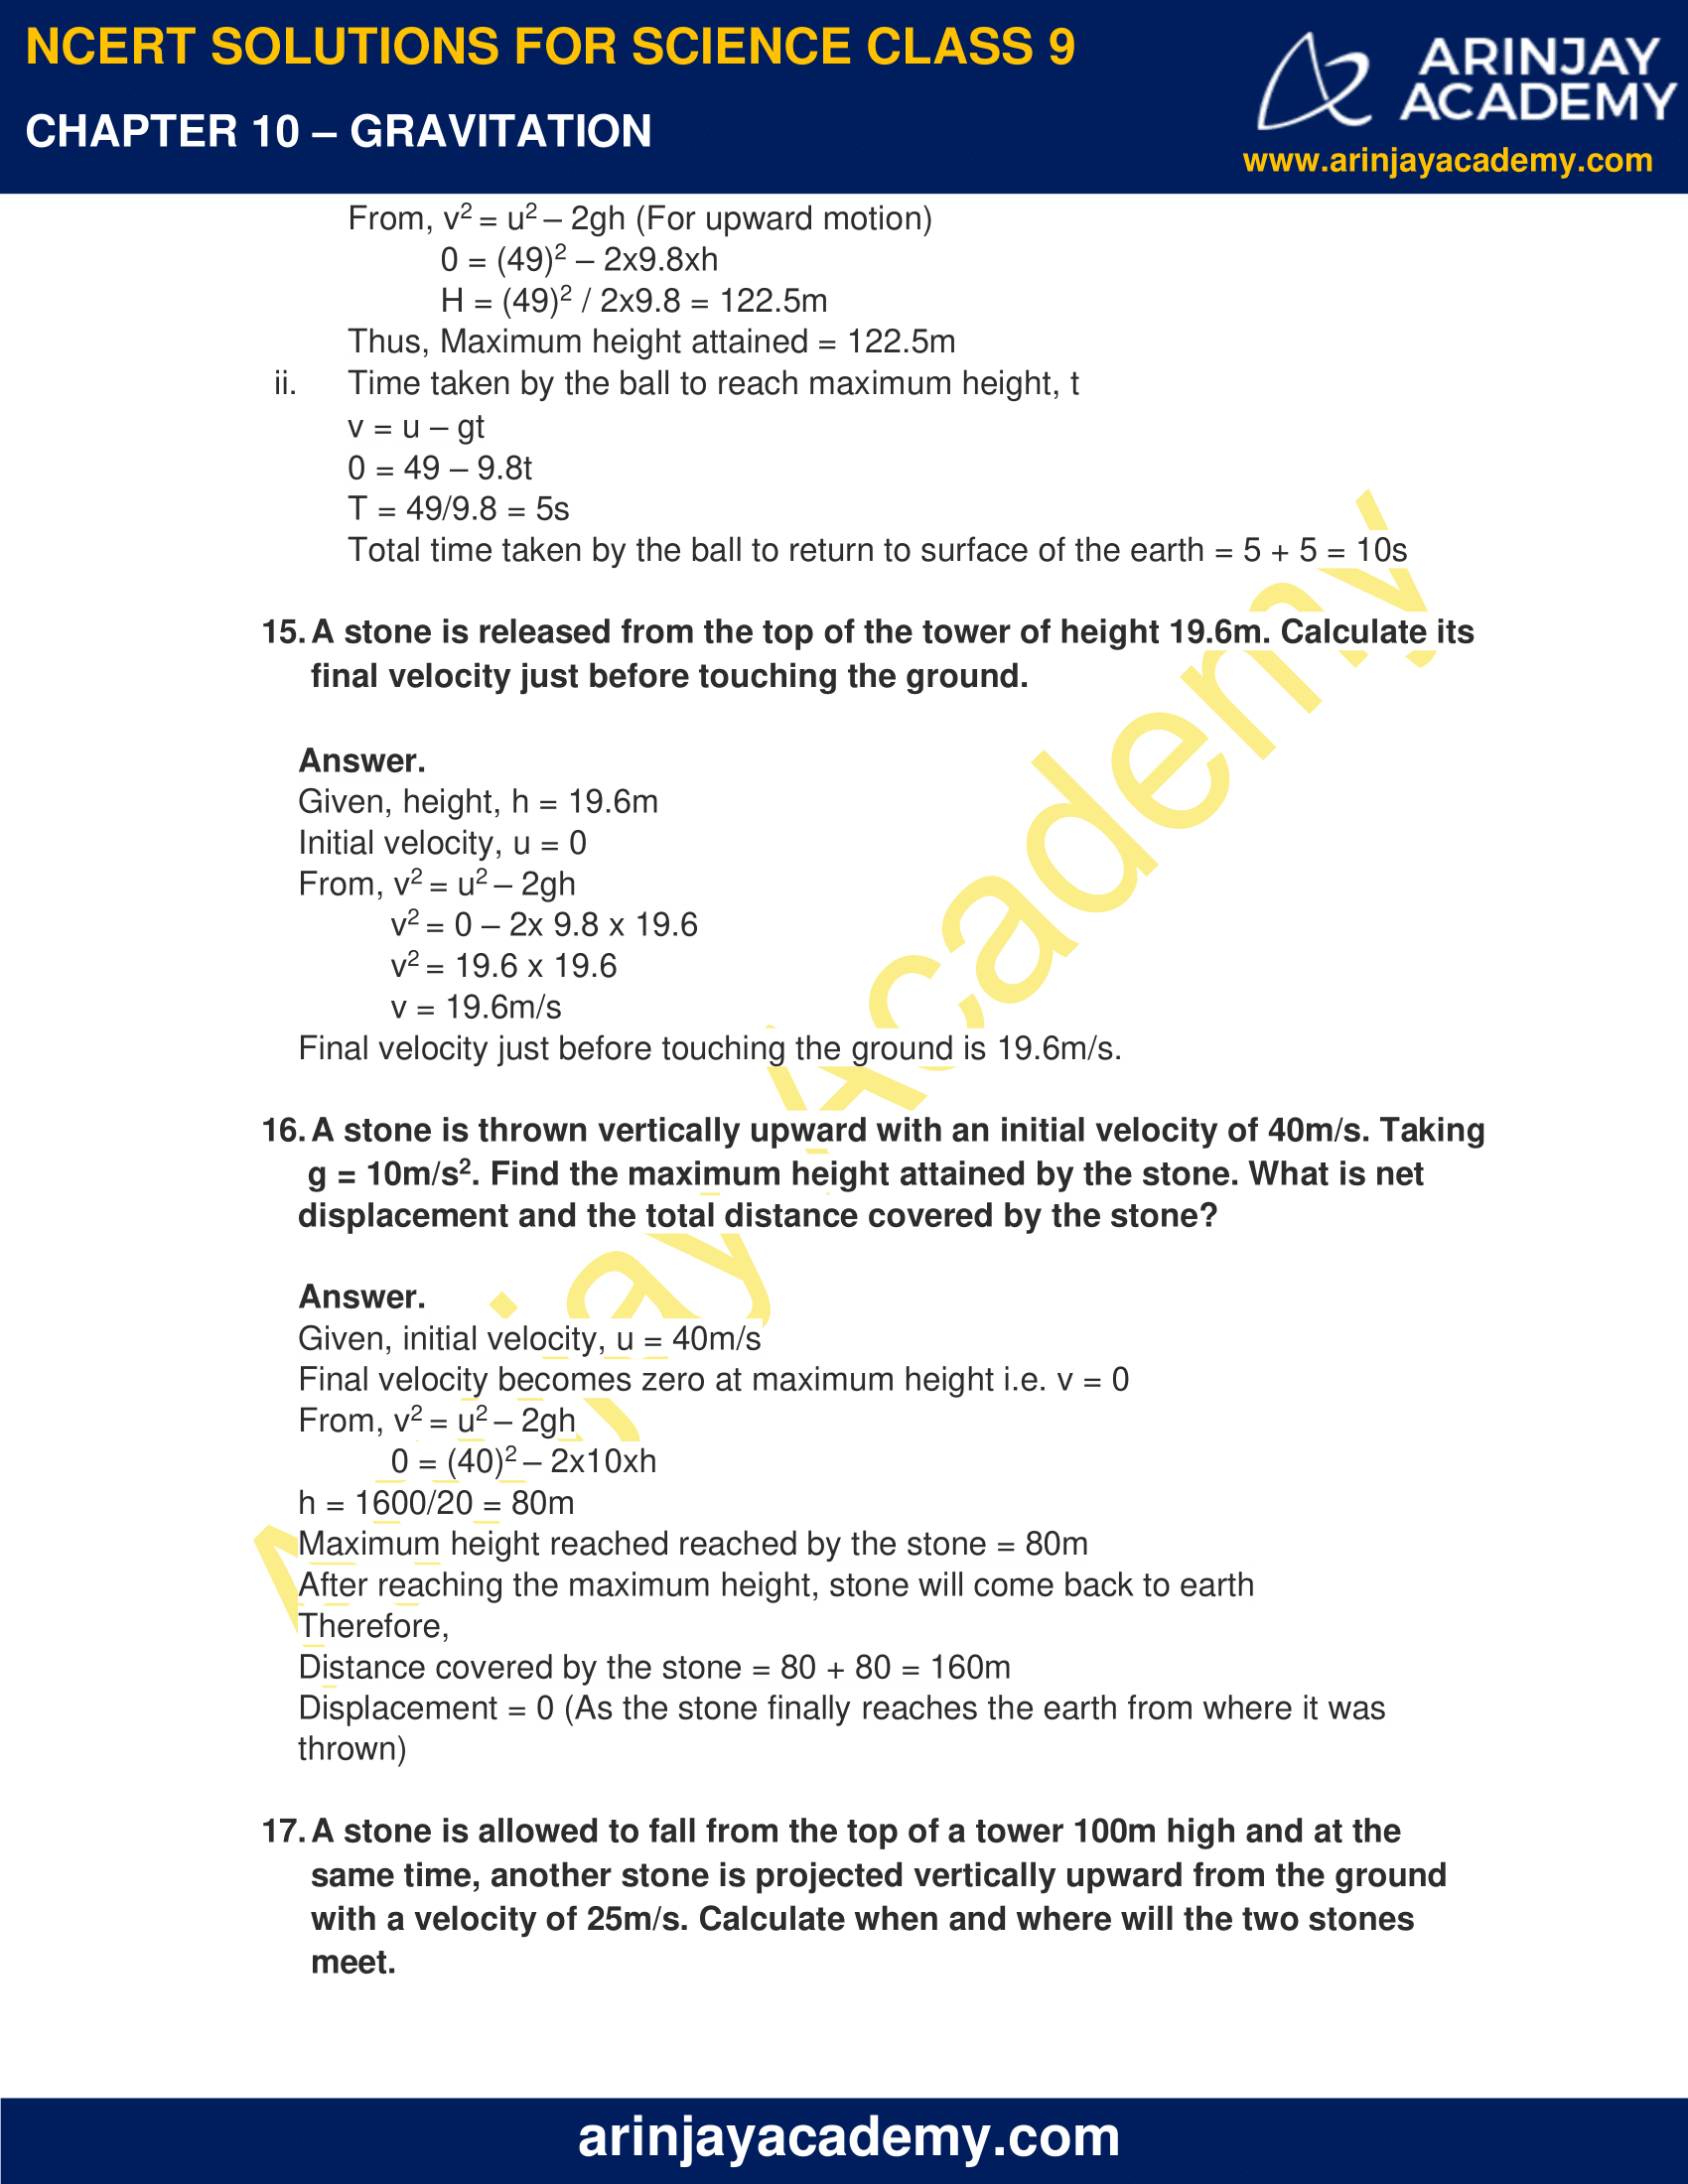 NCERT Solutions for Class 9 Science Chapter 10 Gravitation image 7